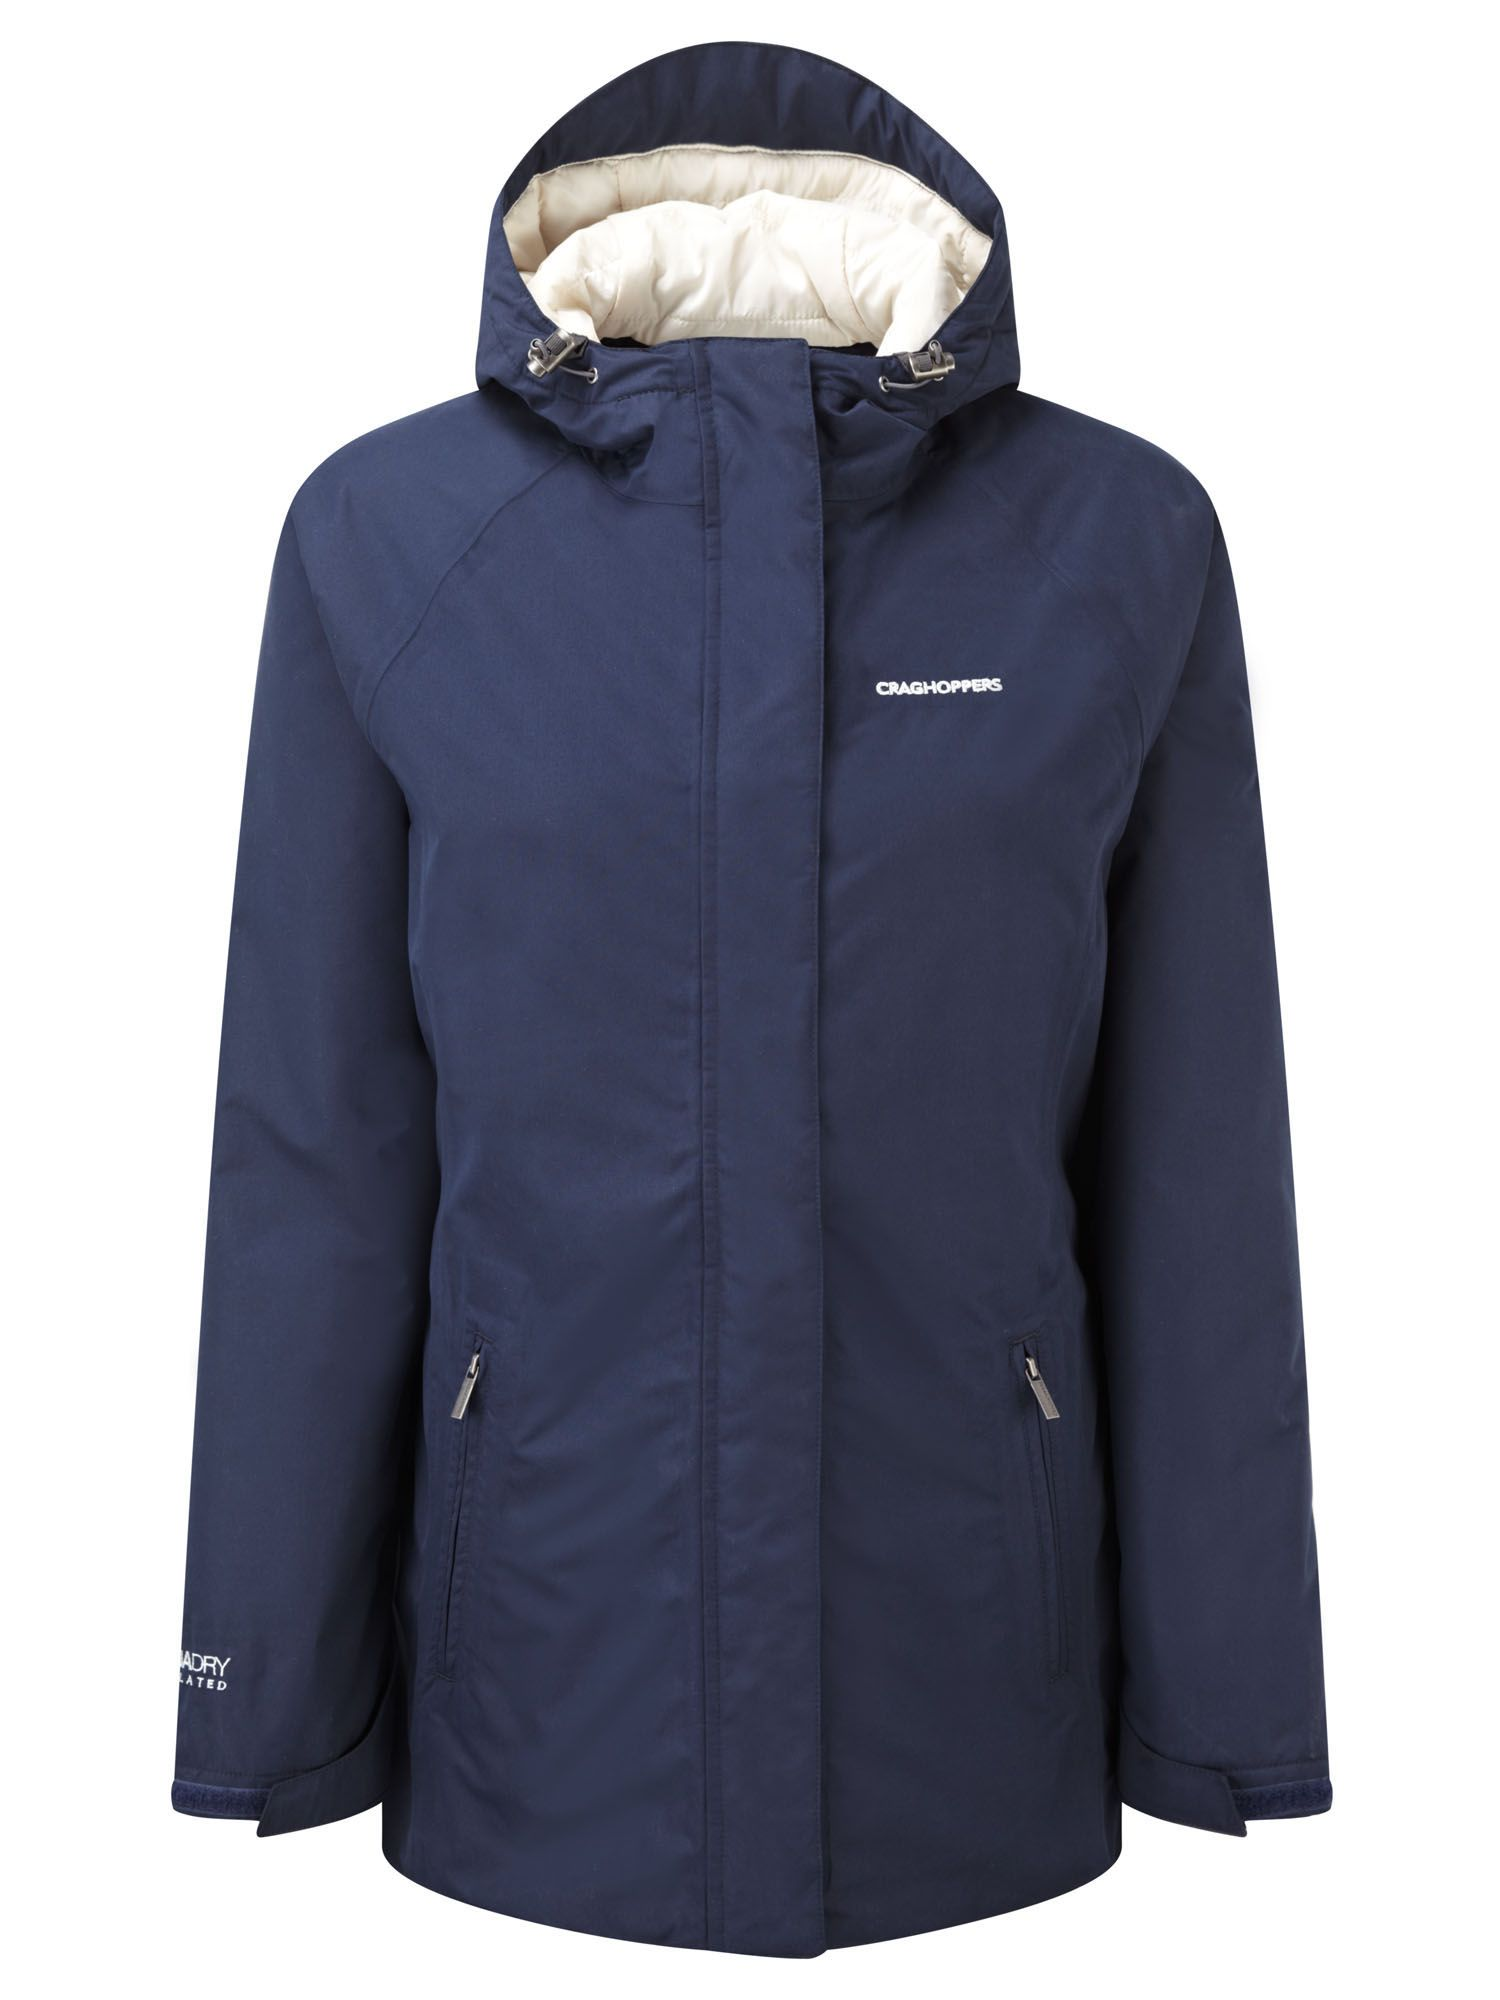 Craghoppers Kayla Waterproof Jacket, Blue